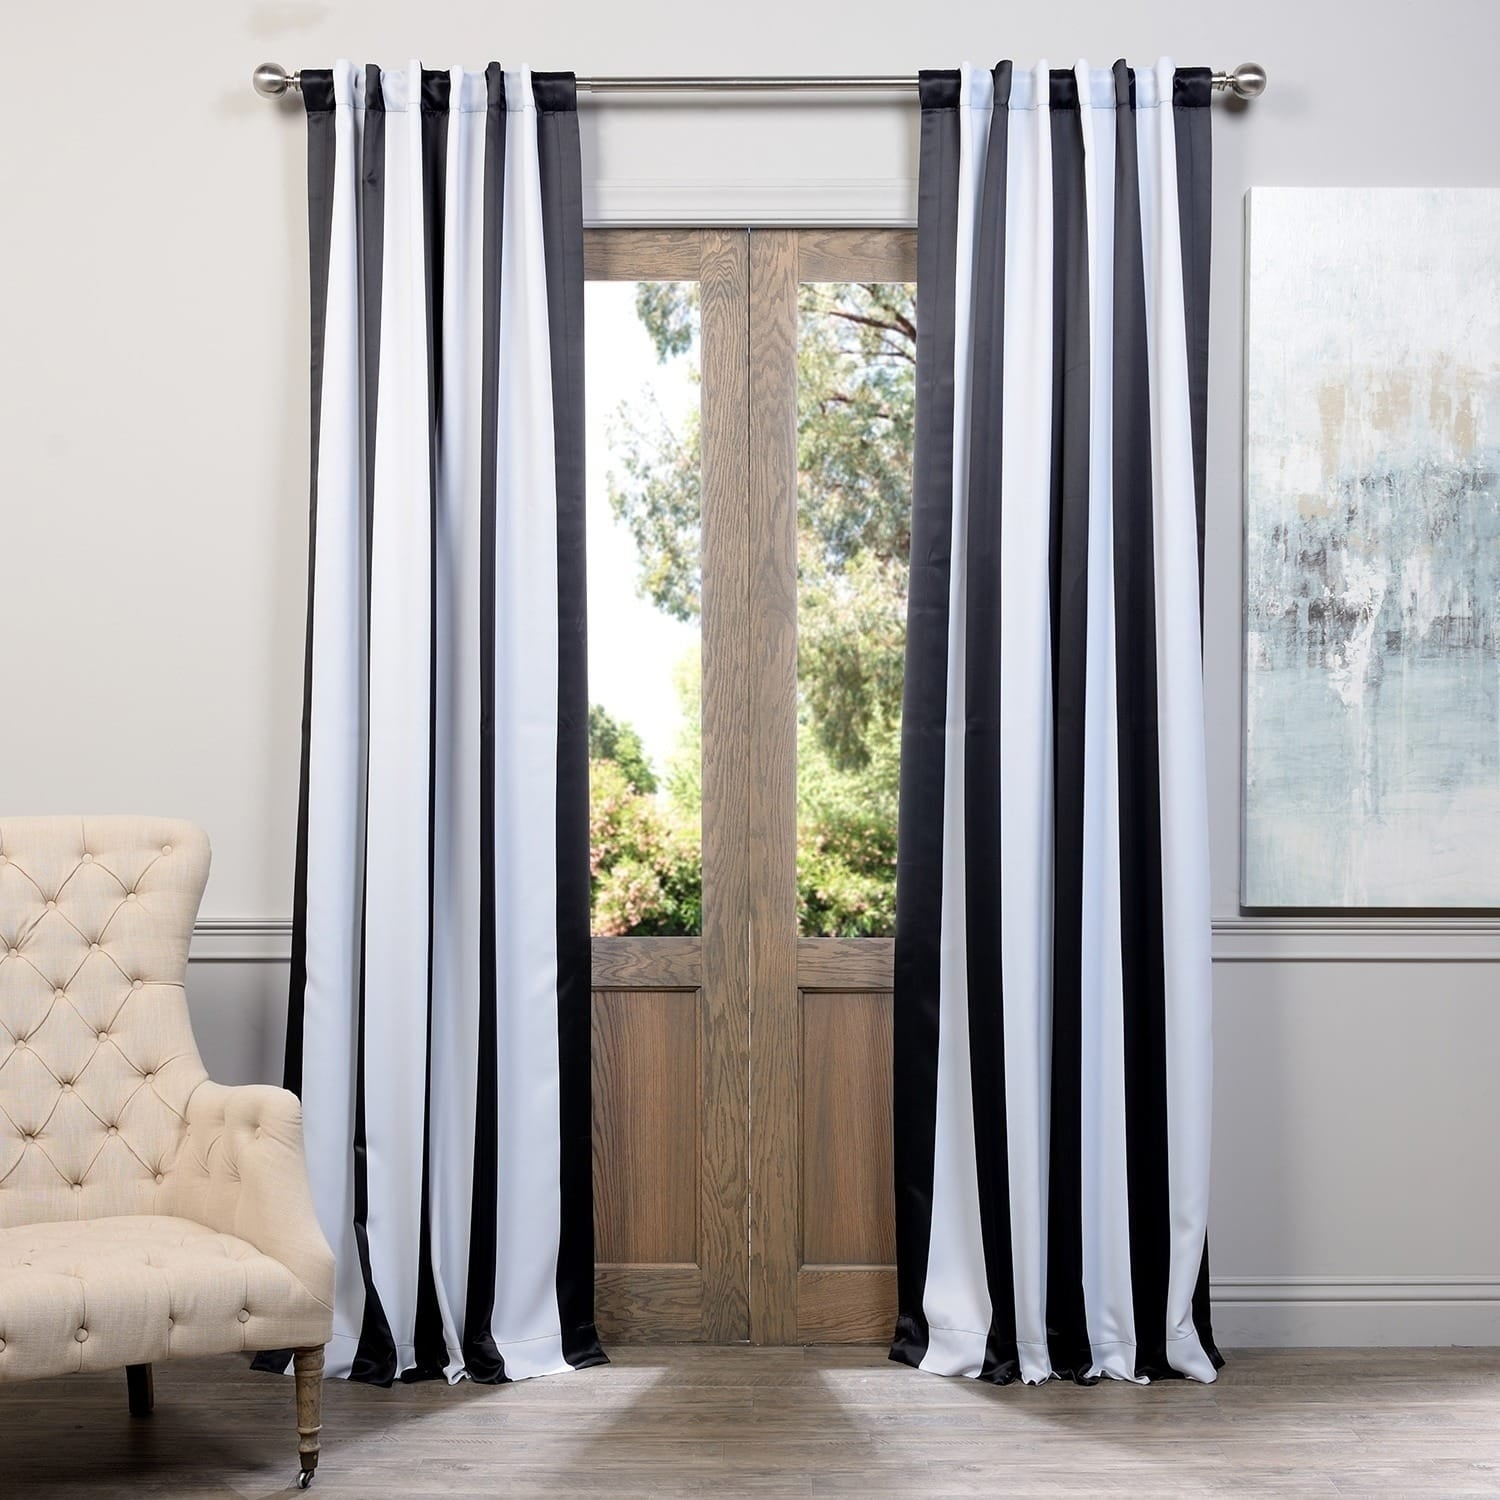 Shop Exclusive Fabrics Black And White Vertical Striped Blackout Curtain Panel Set